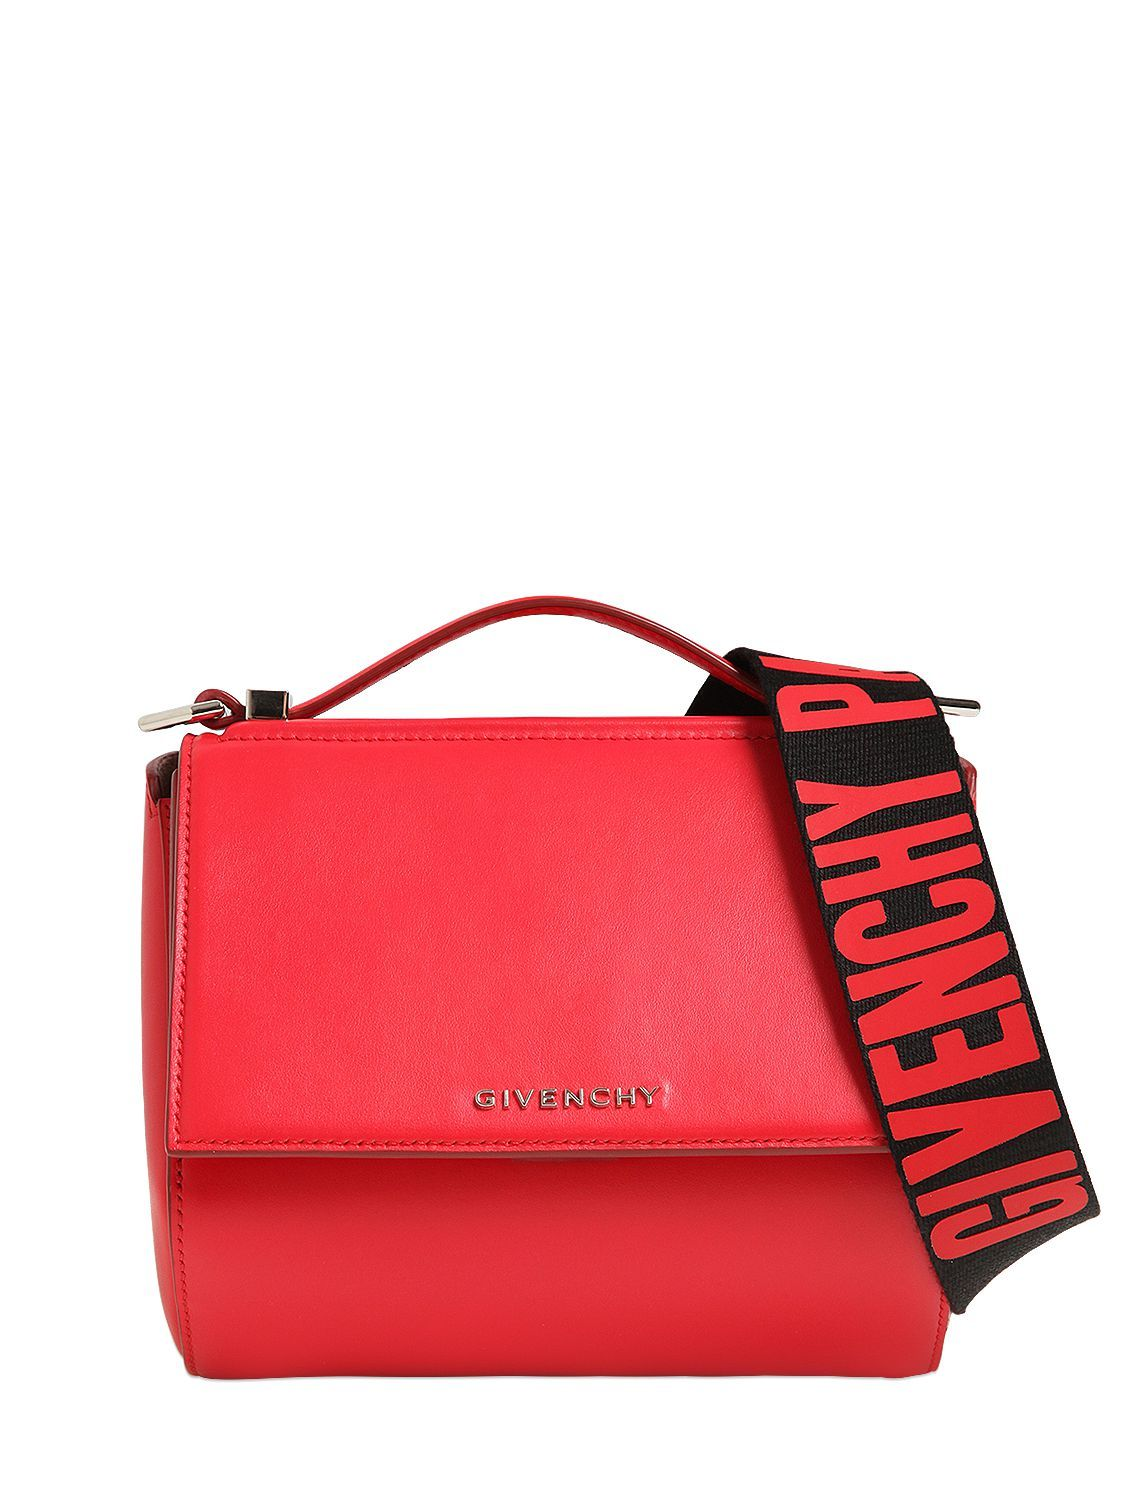 99df8655e2 GIVENCHY MINI PANDORA BOX LOGO STRAP LEATHER BAG.  givenchy  bags  shoulder  bags  leather  lining